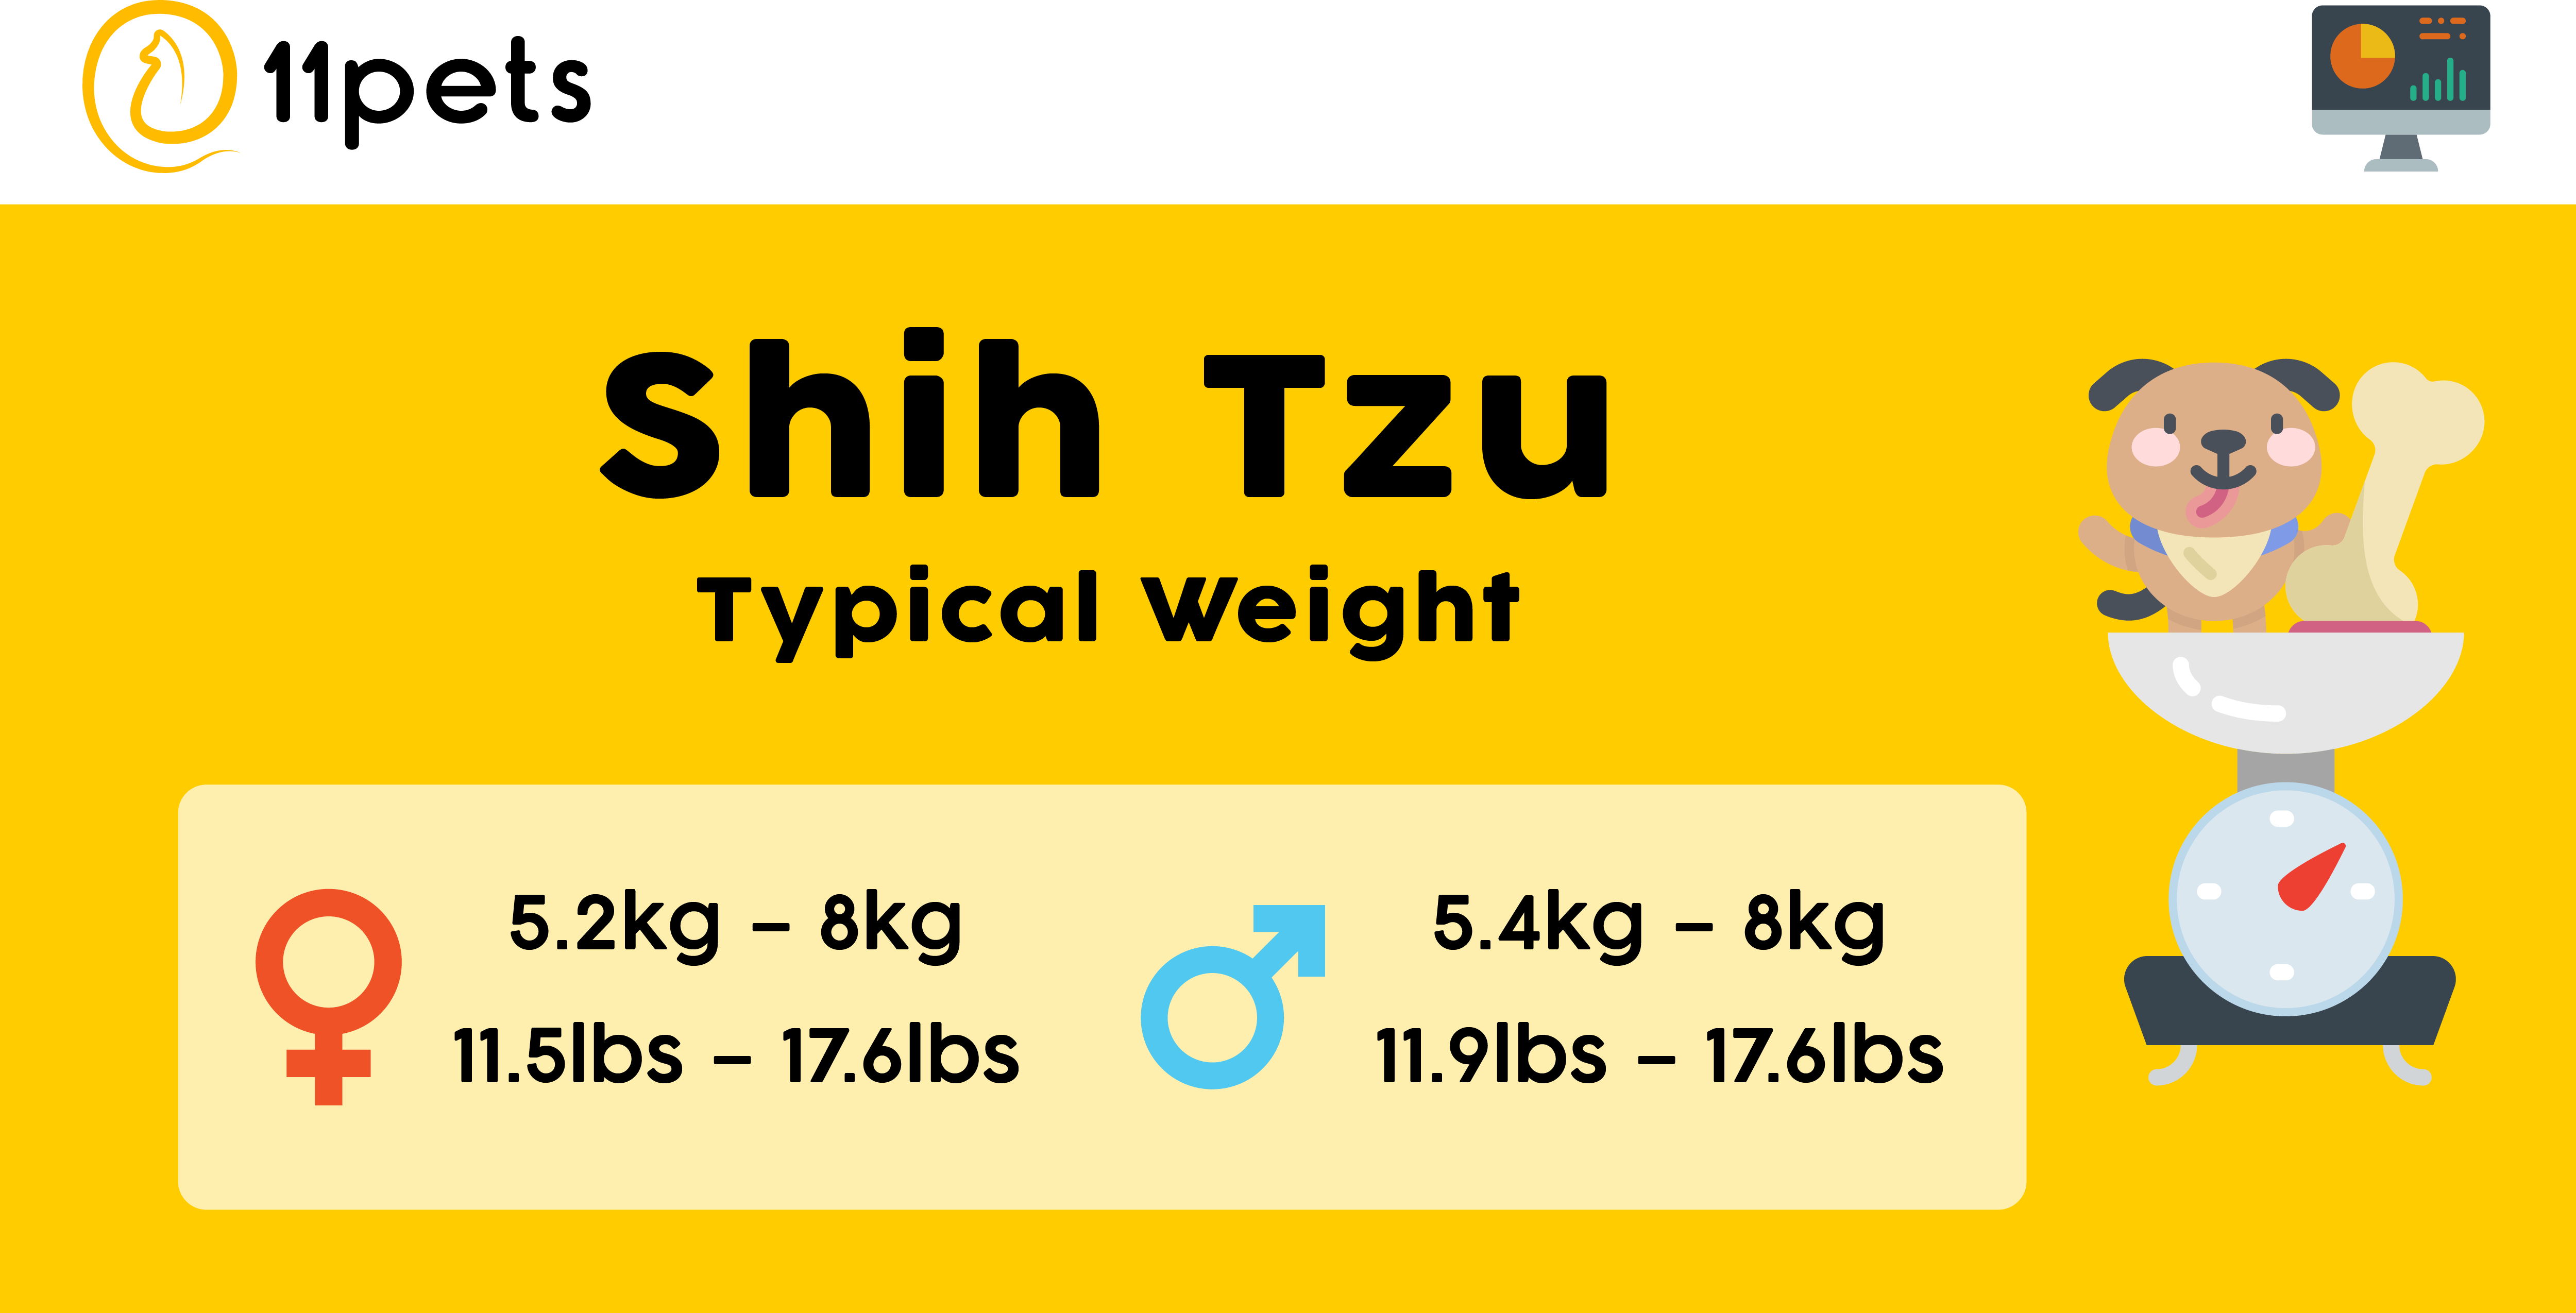 Typical weight for Shih Tzus